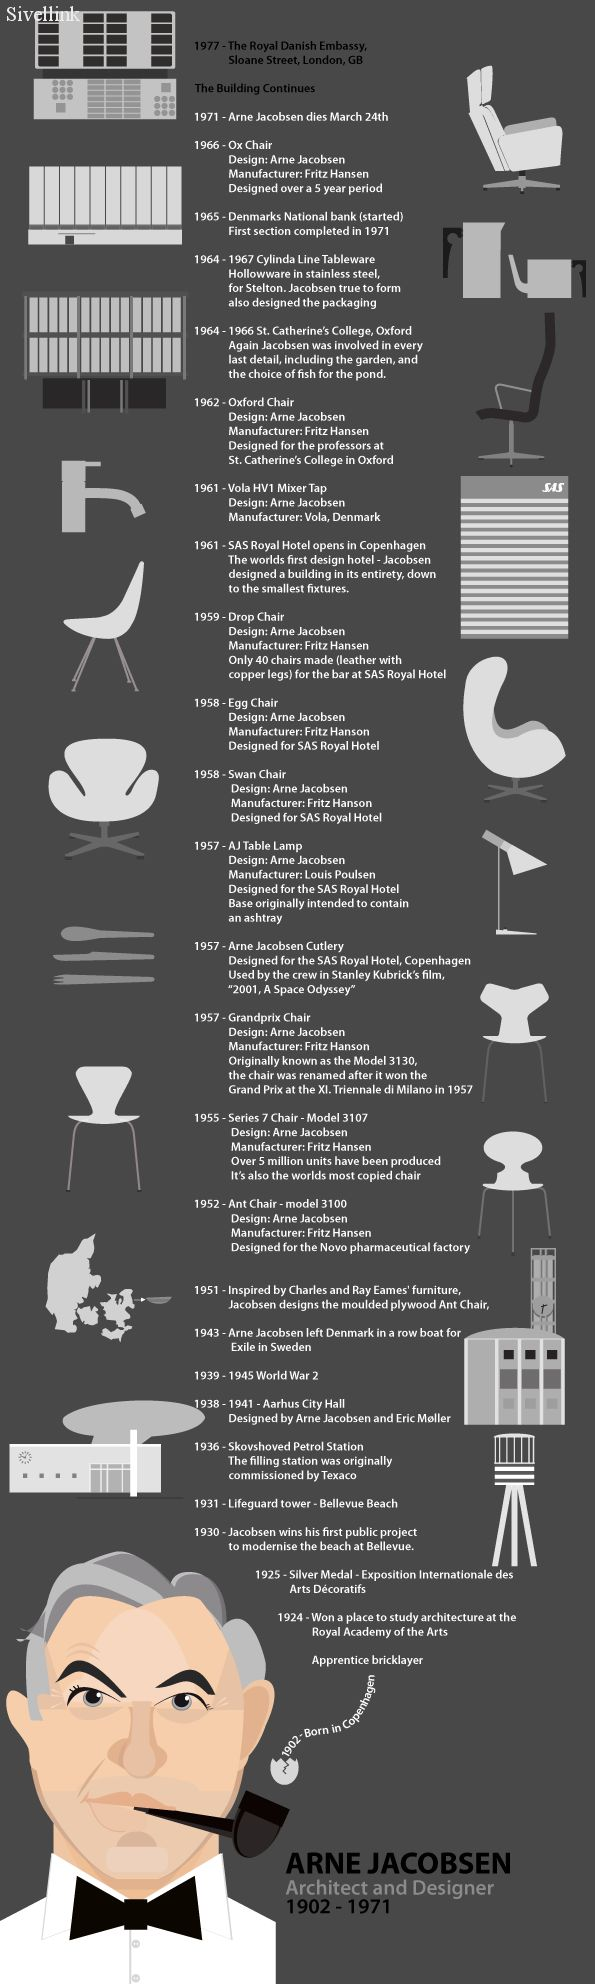 #Arne Jacobsen #Architect 1902-1971 #infographic by #Sivellink